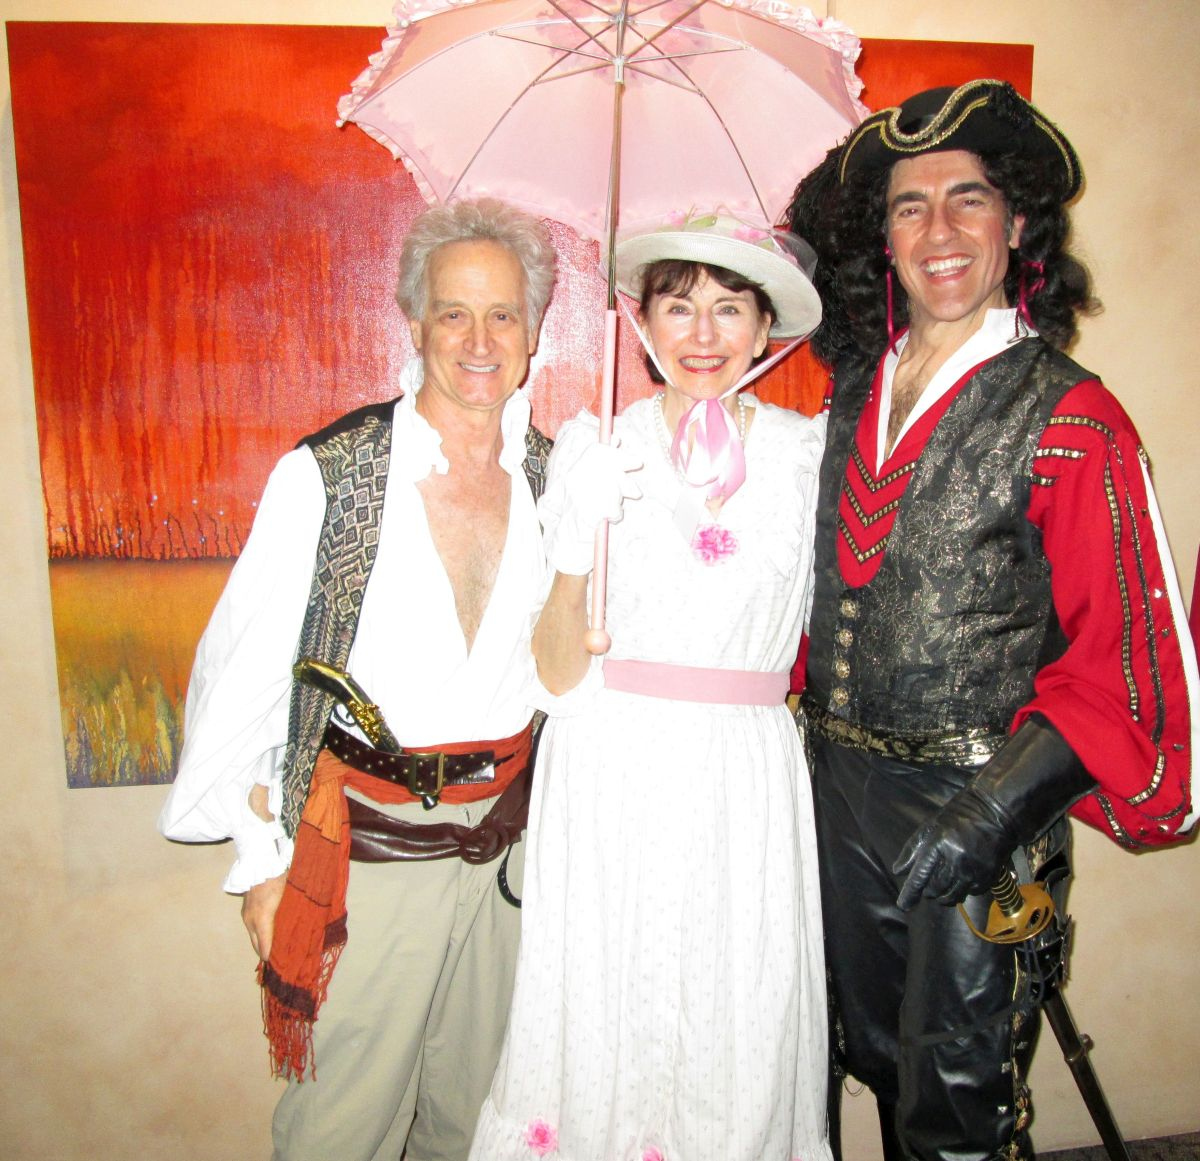 Linda and Bob with the Pirate King